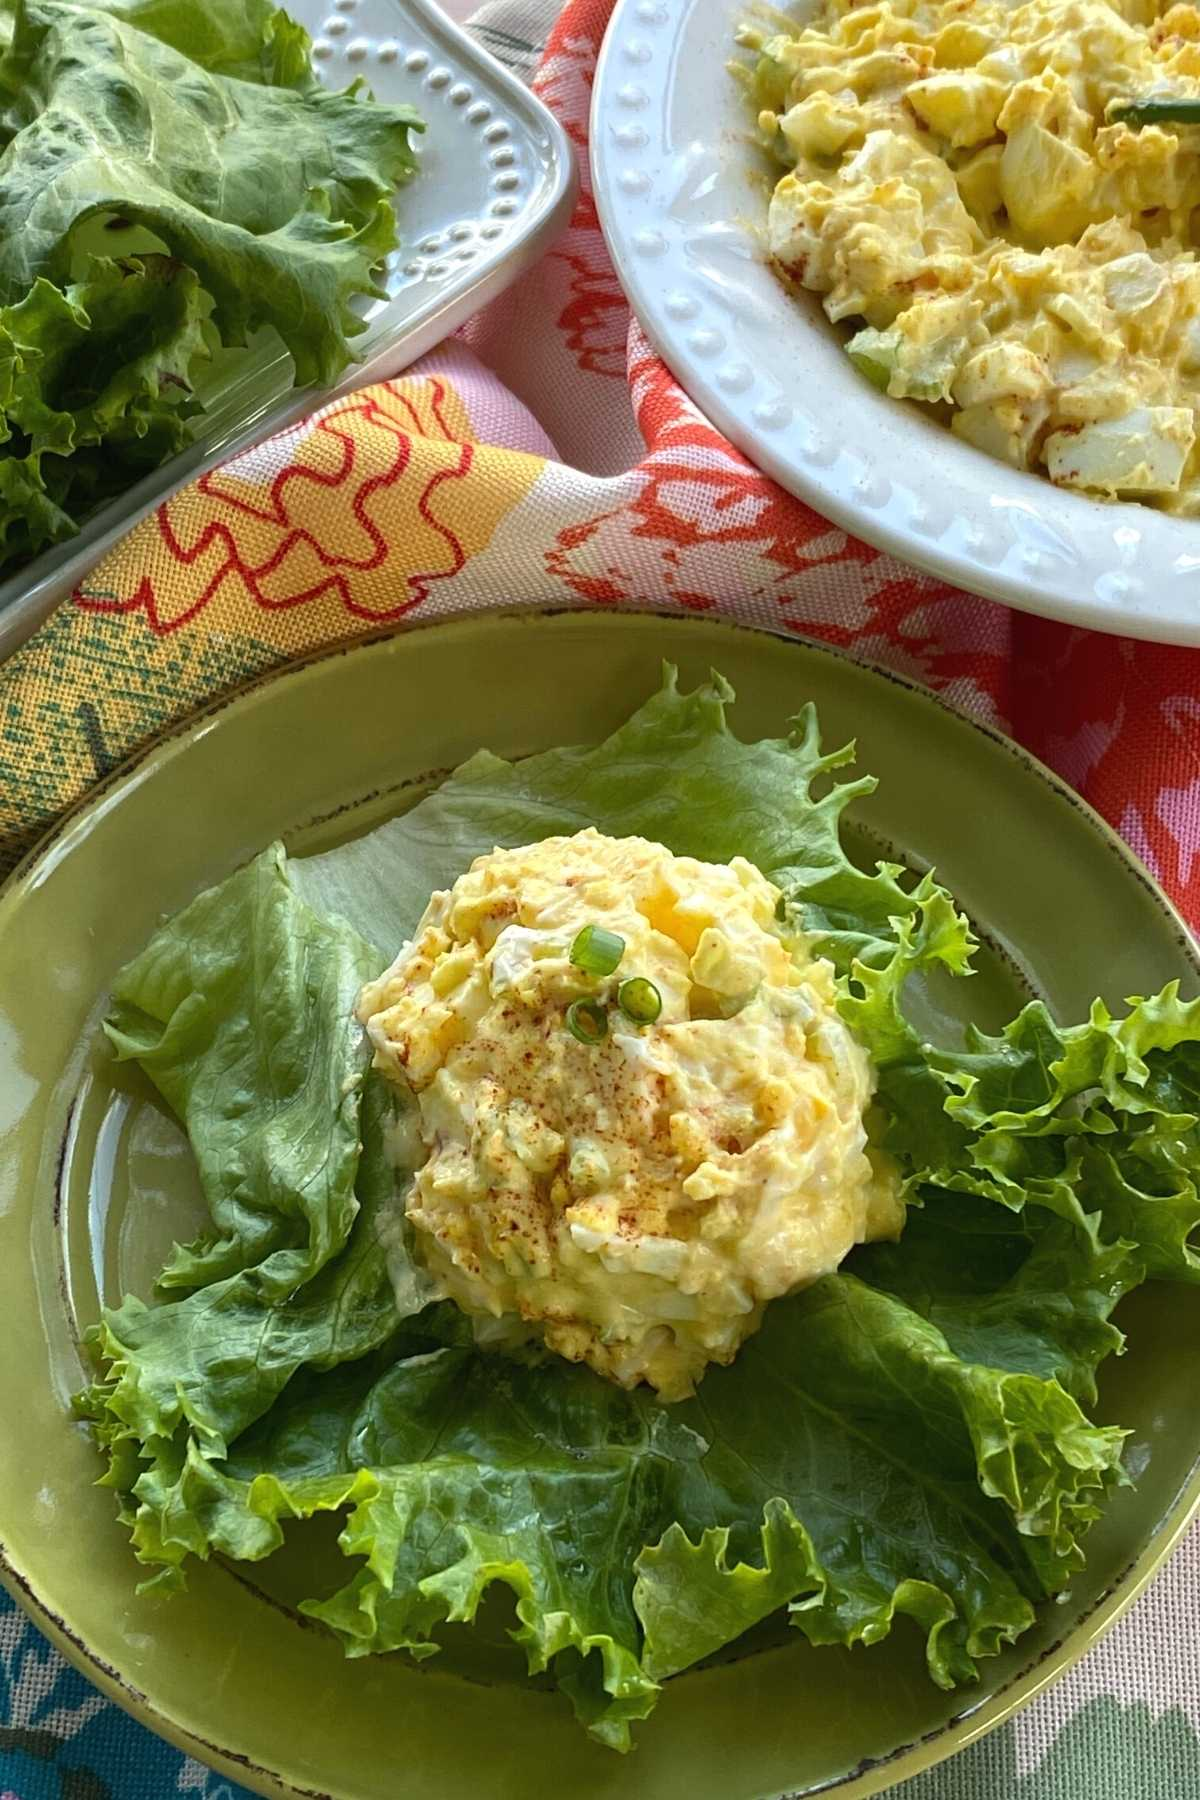 Scoop of low-carb egg salad on a large lettuce leaf with serving bowl and more leaves behind it.